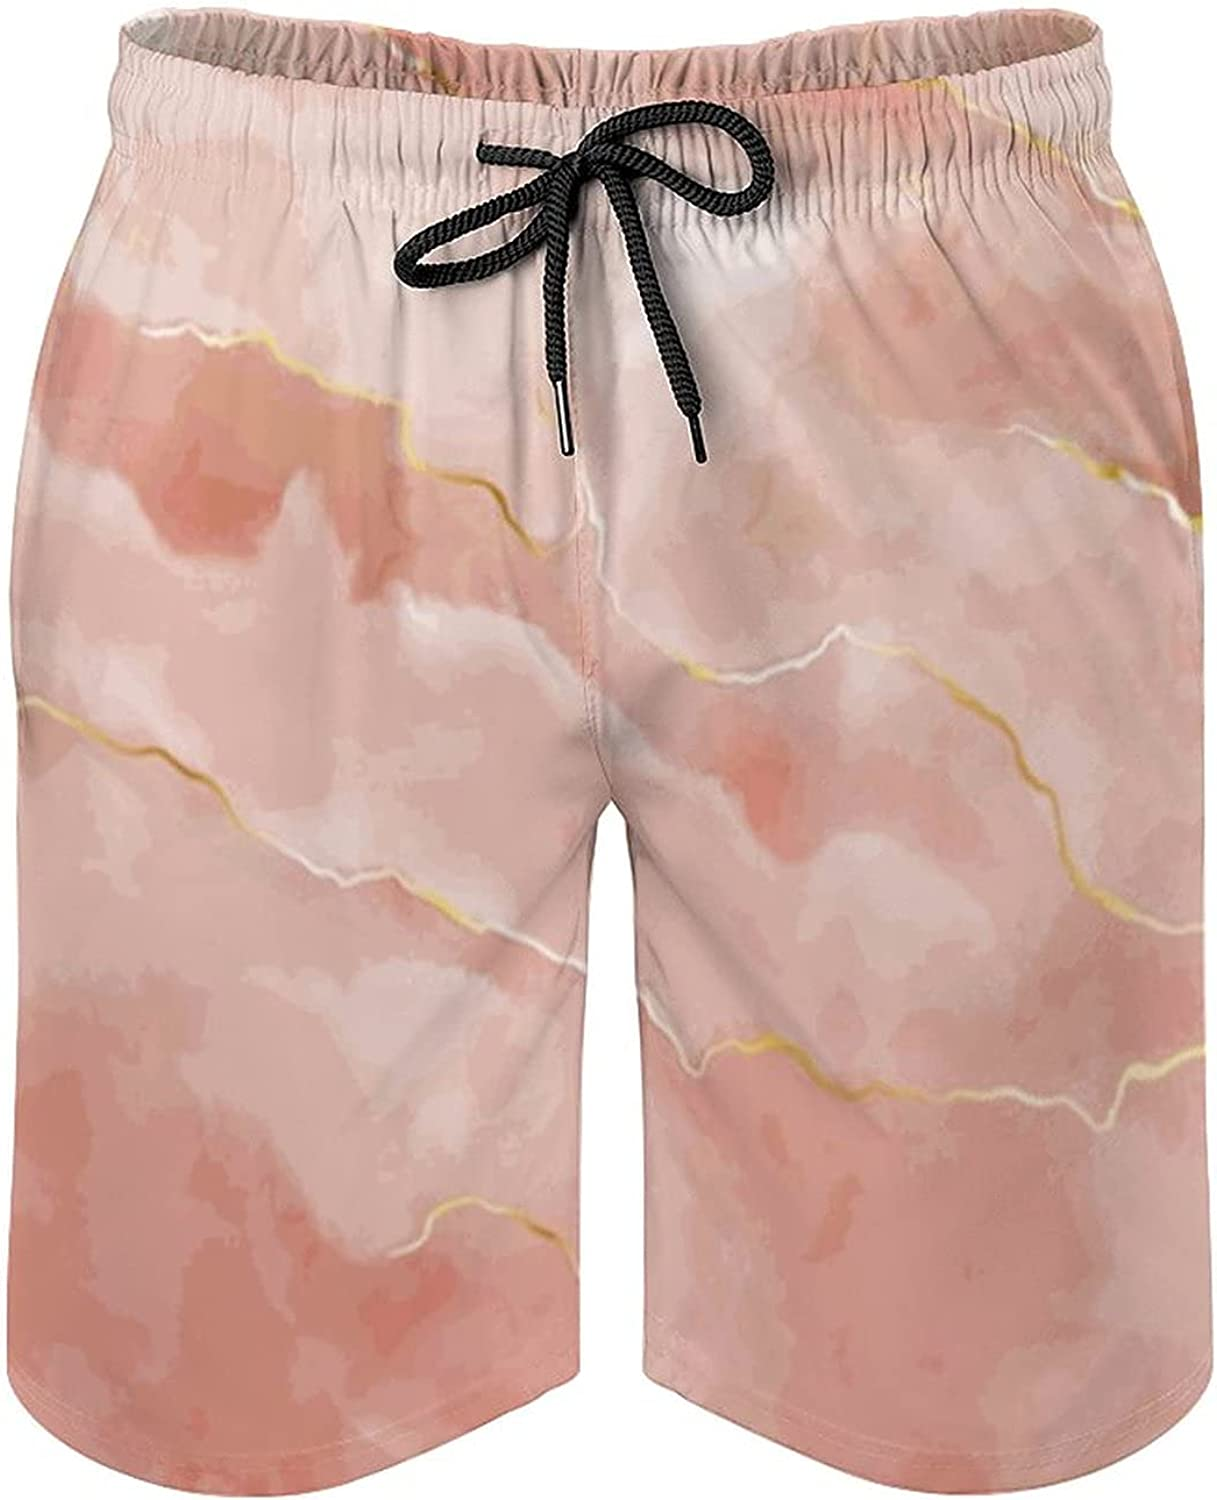 Watercolor Stone Rose Marble with Gold Men's Swimming Trunks Beach Shorts Shorts with Pocket Sports Pants